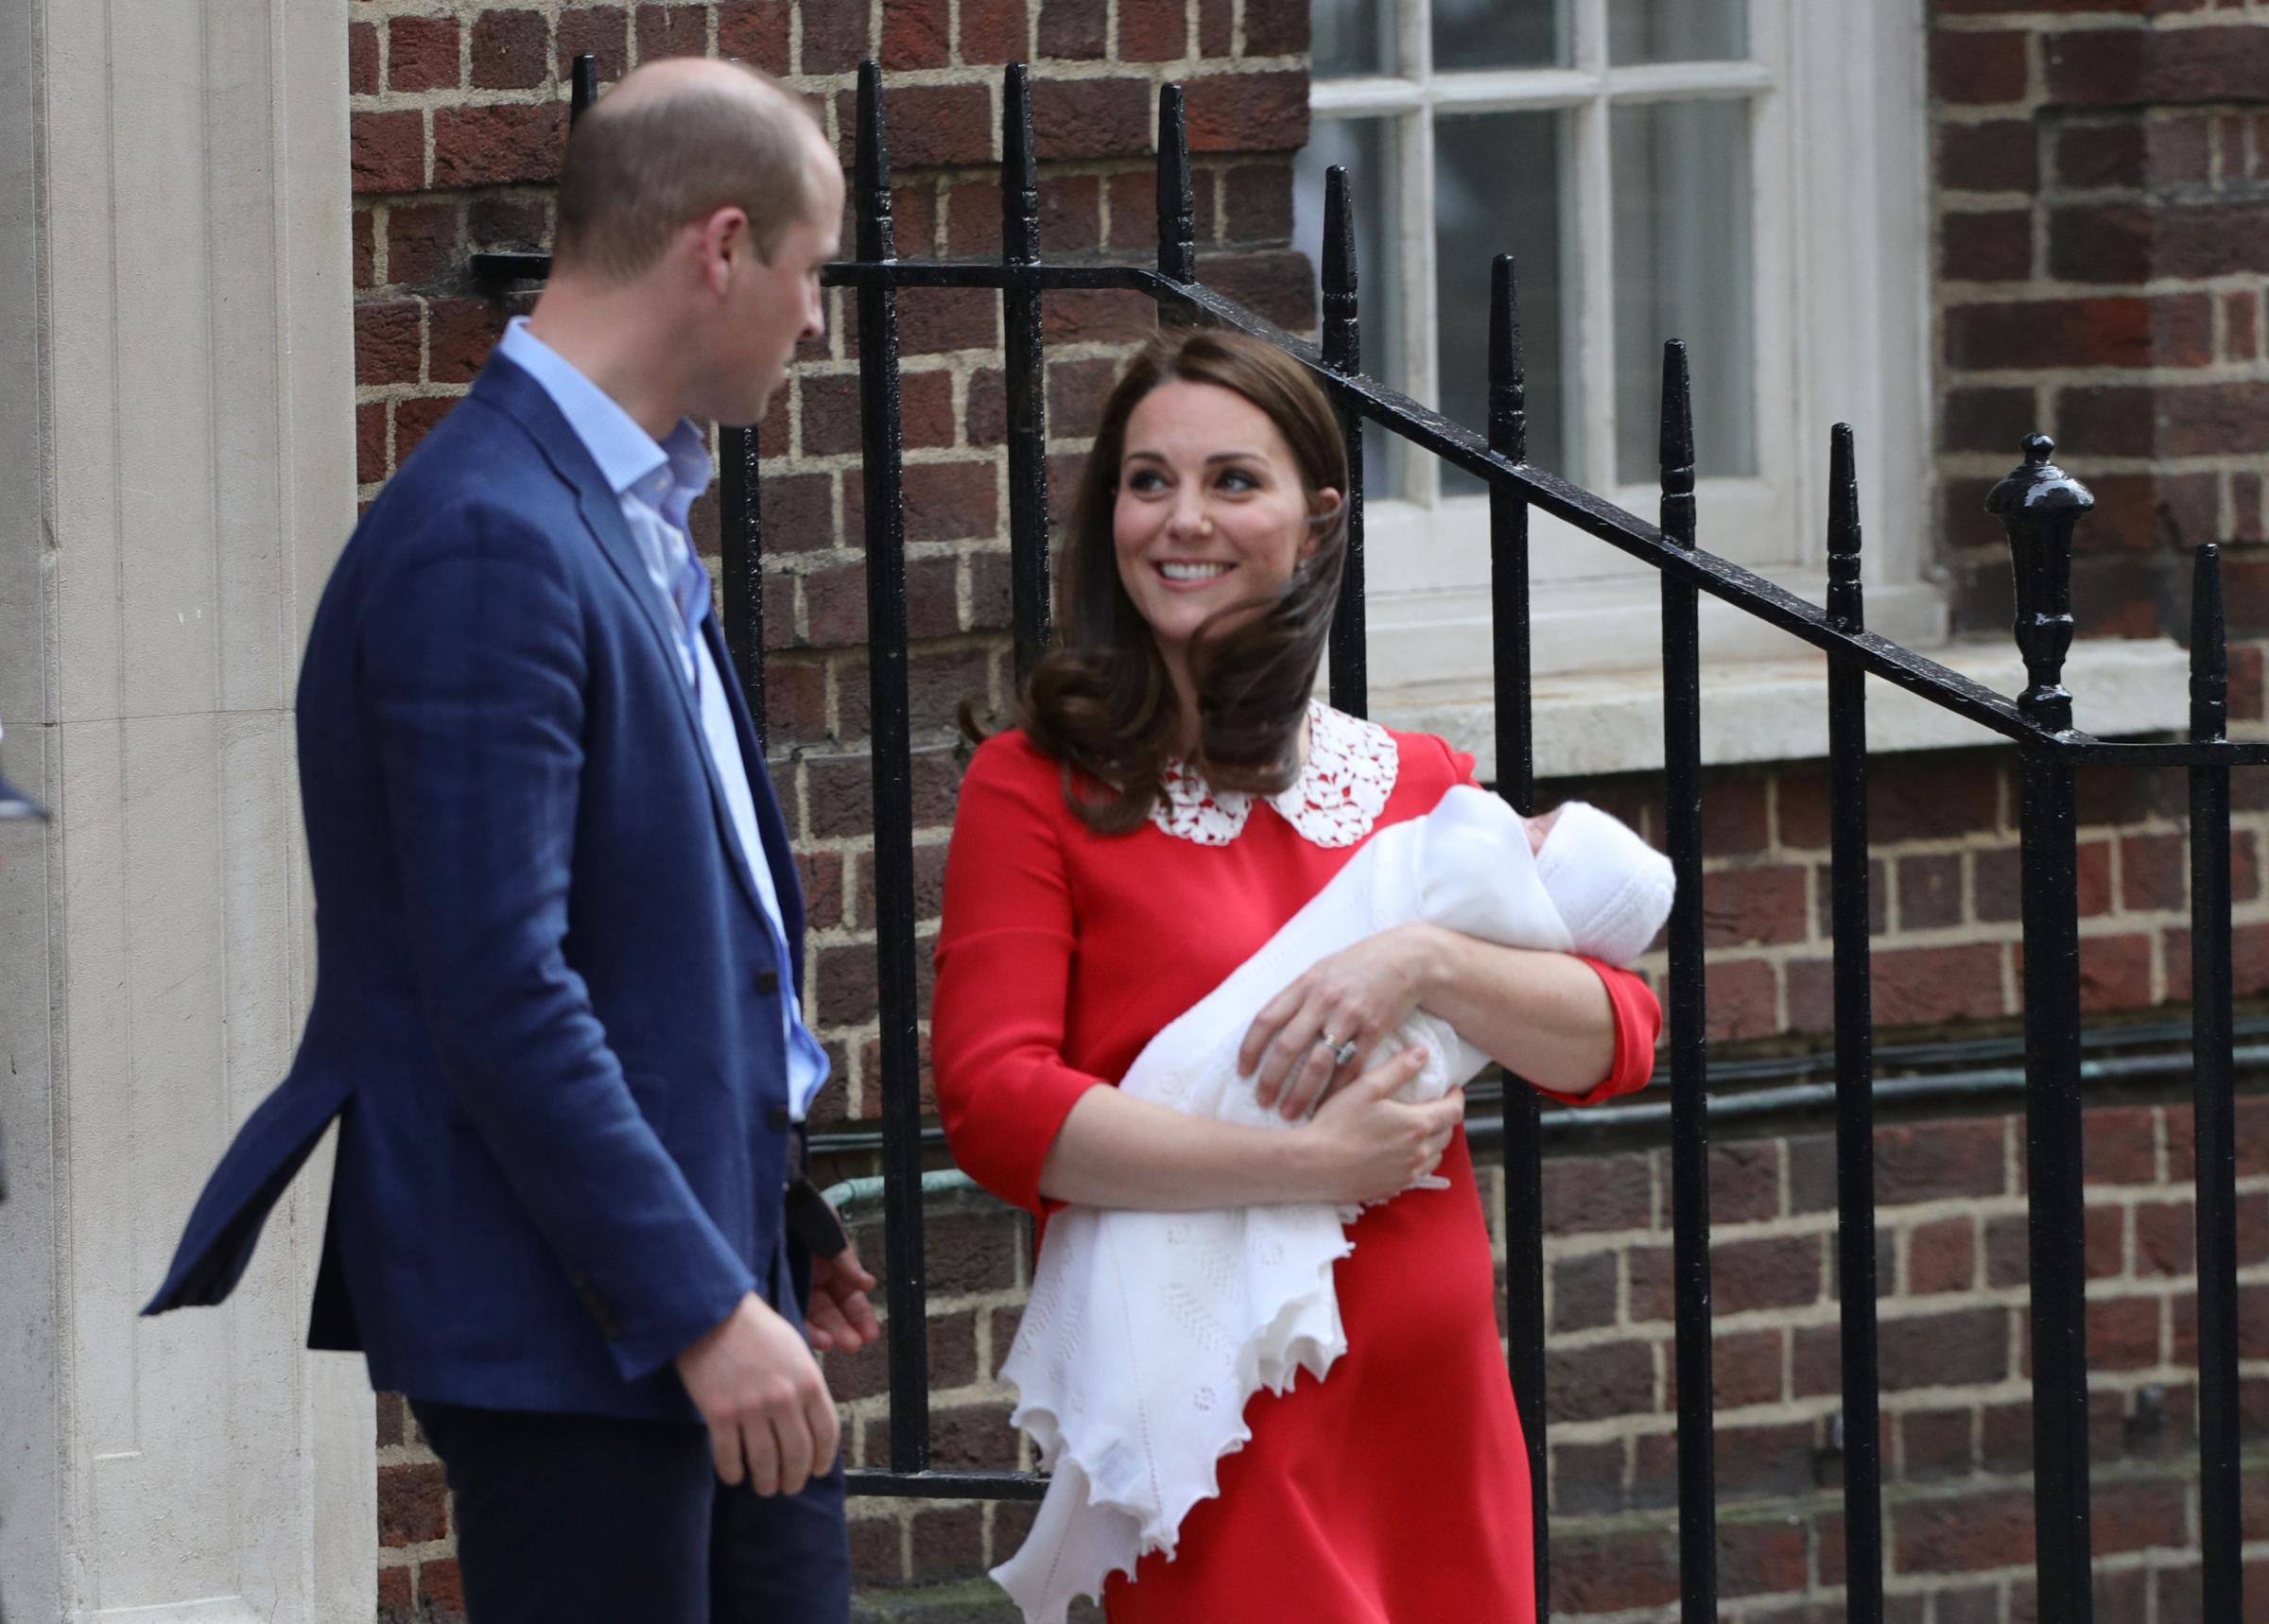 IT'S A BOY! The Duchess of Cambridge gives birth to third child